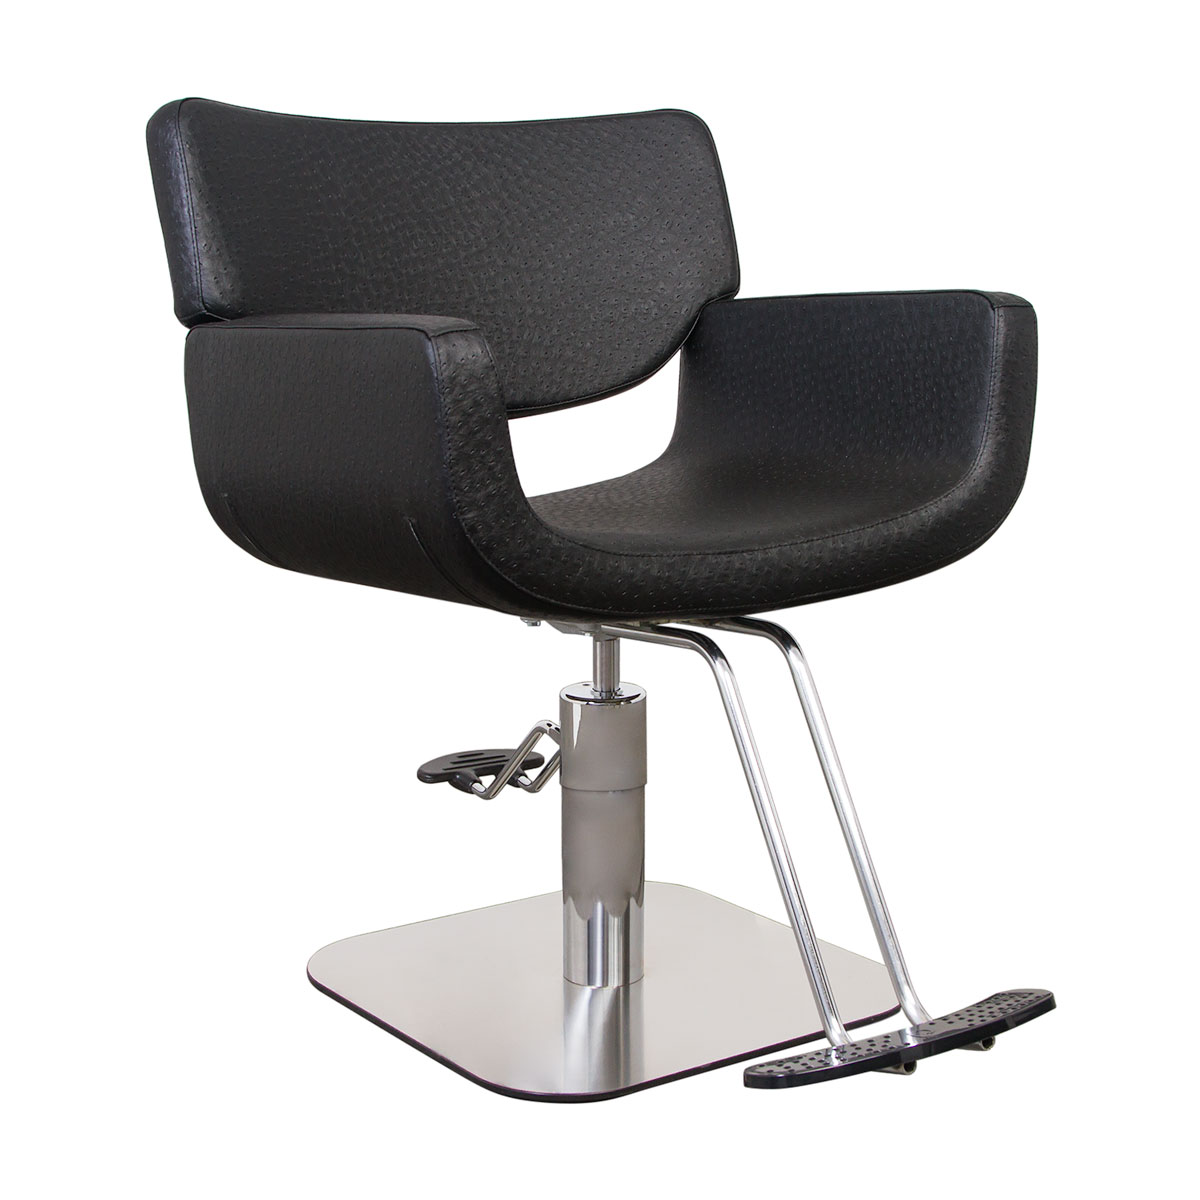 Quadro Hair Salon Chair by Salon Ambience  main product image